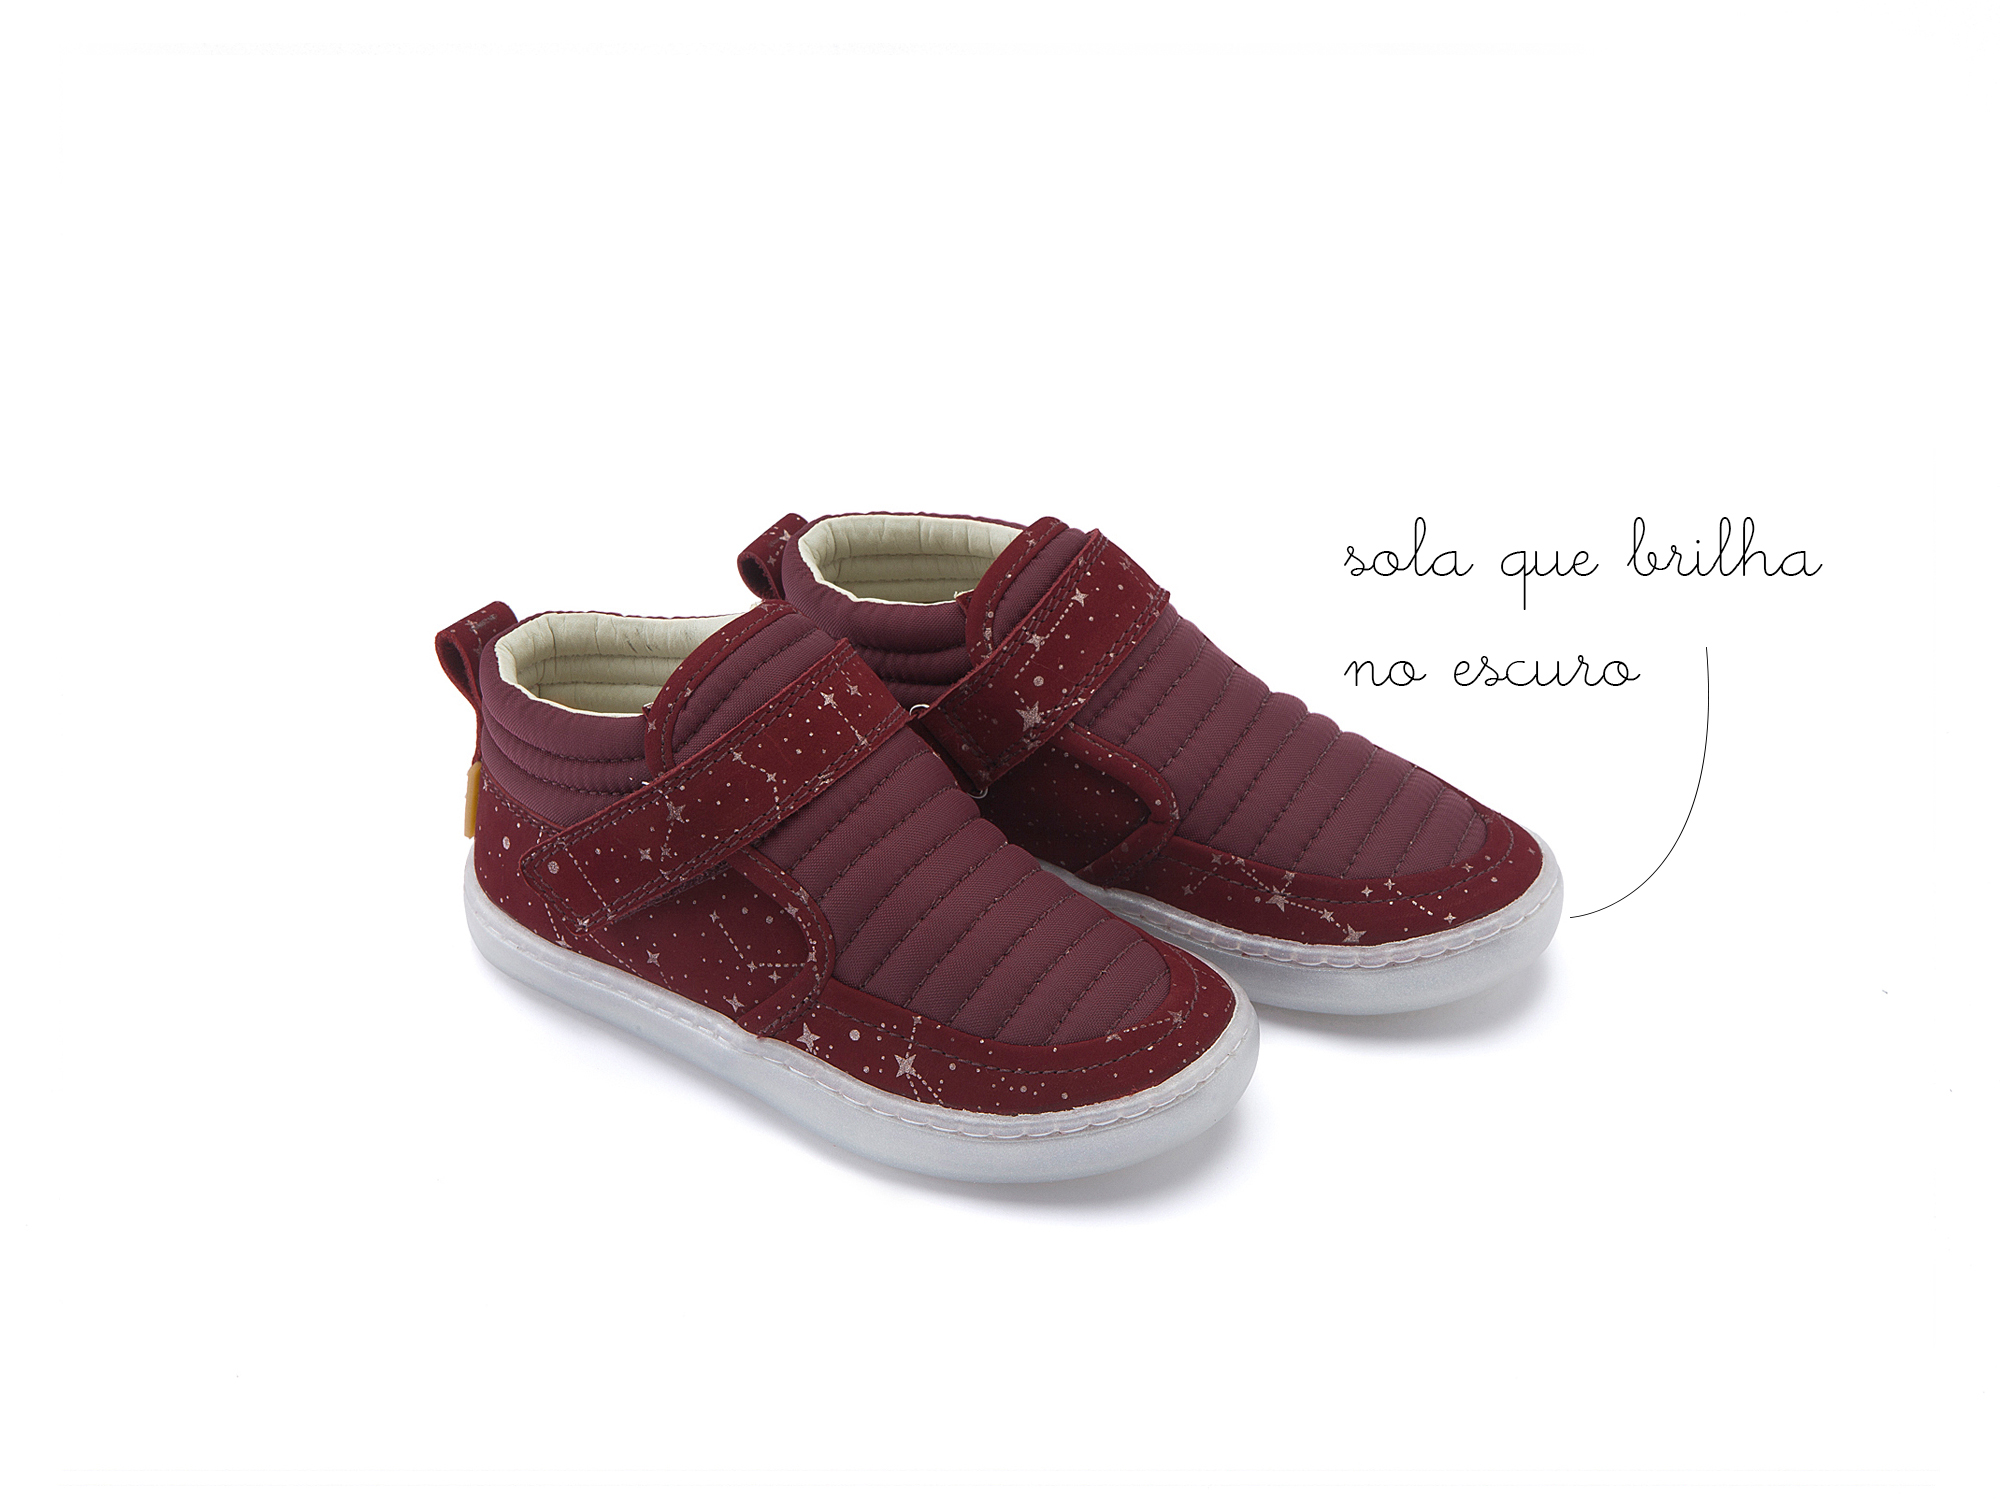 Bota Little Spacesuit Plum Nylon/ Ruby Space Toddler 2 à 4 anos - 0